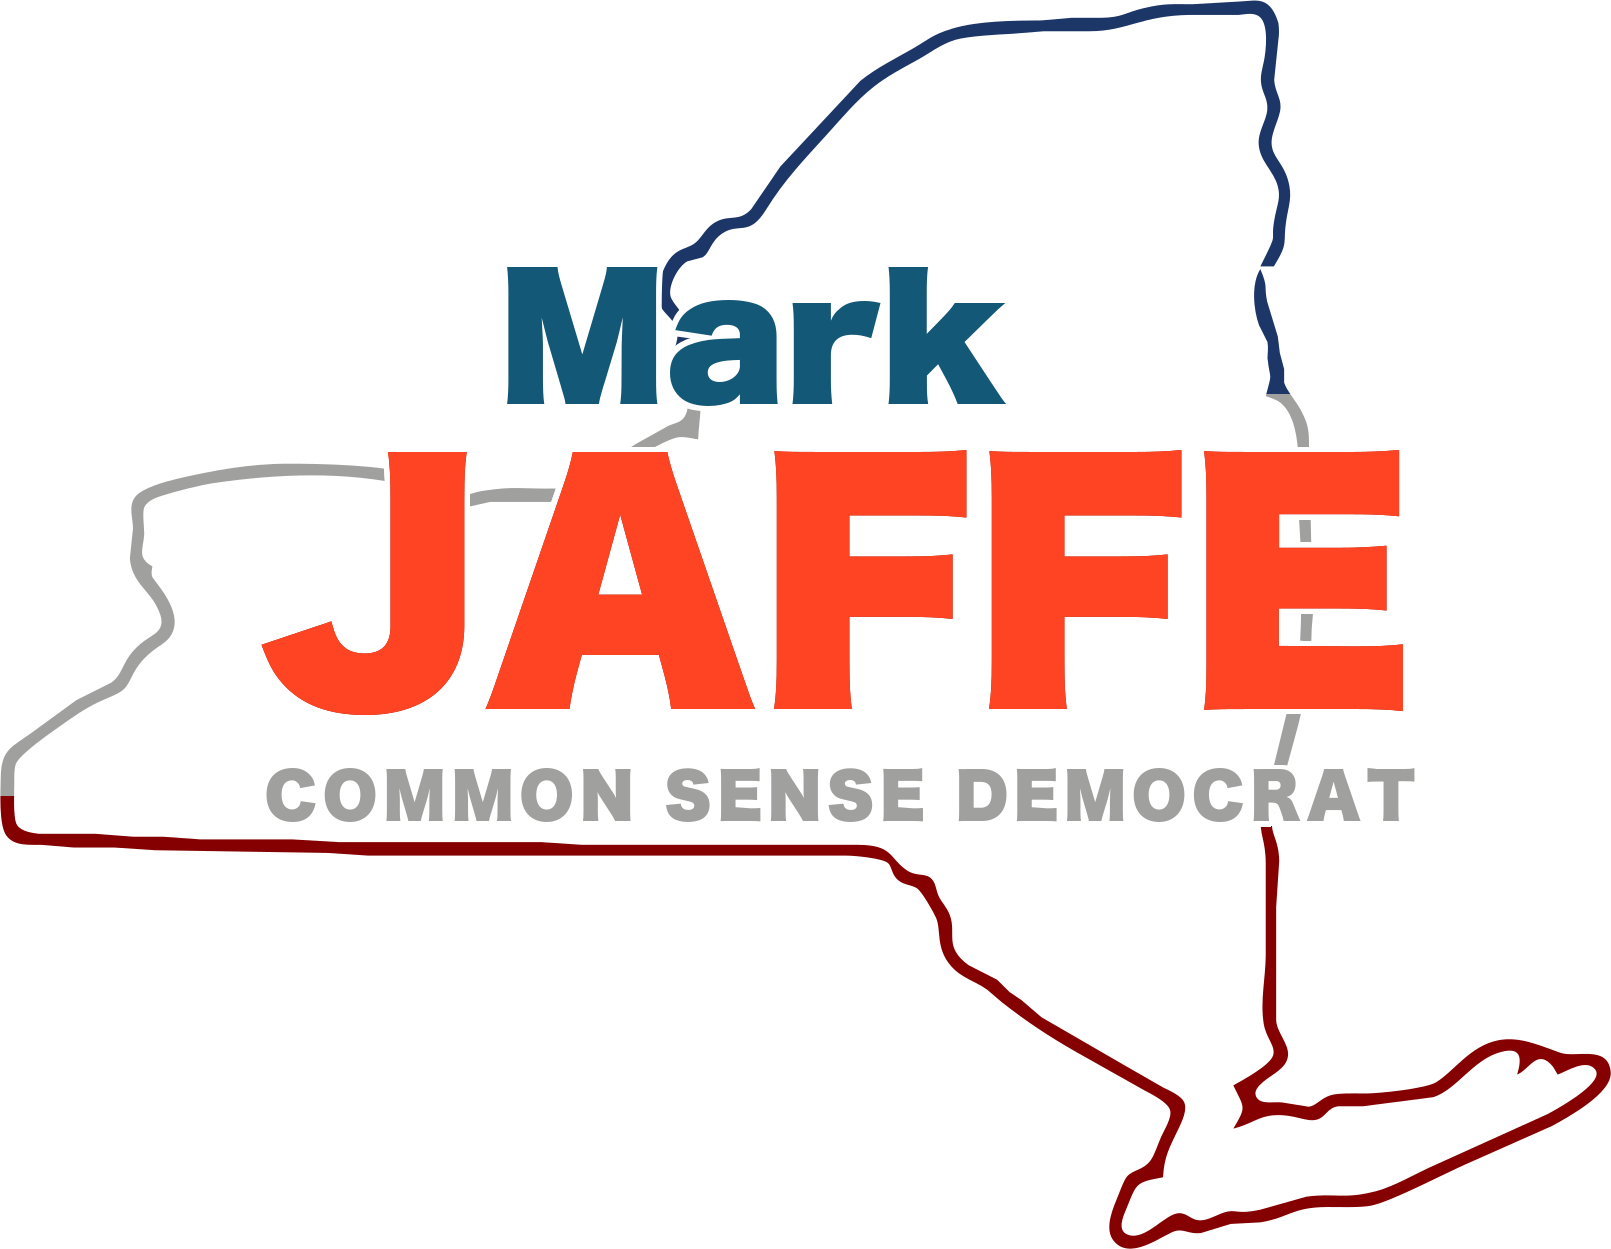 Mark Jaffe